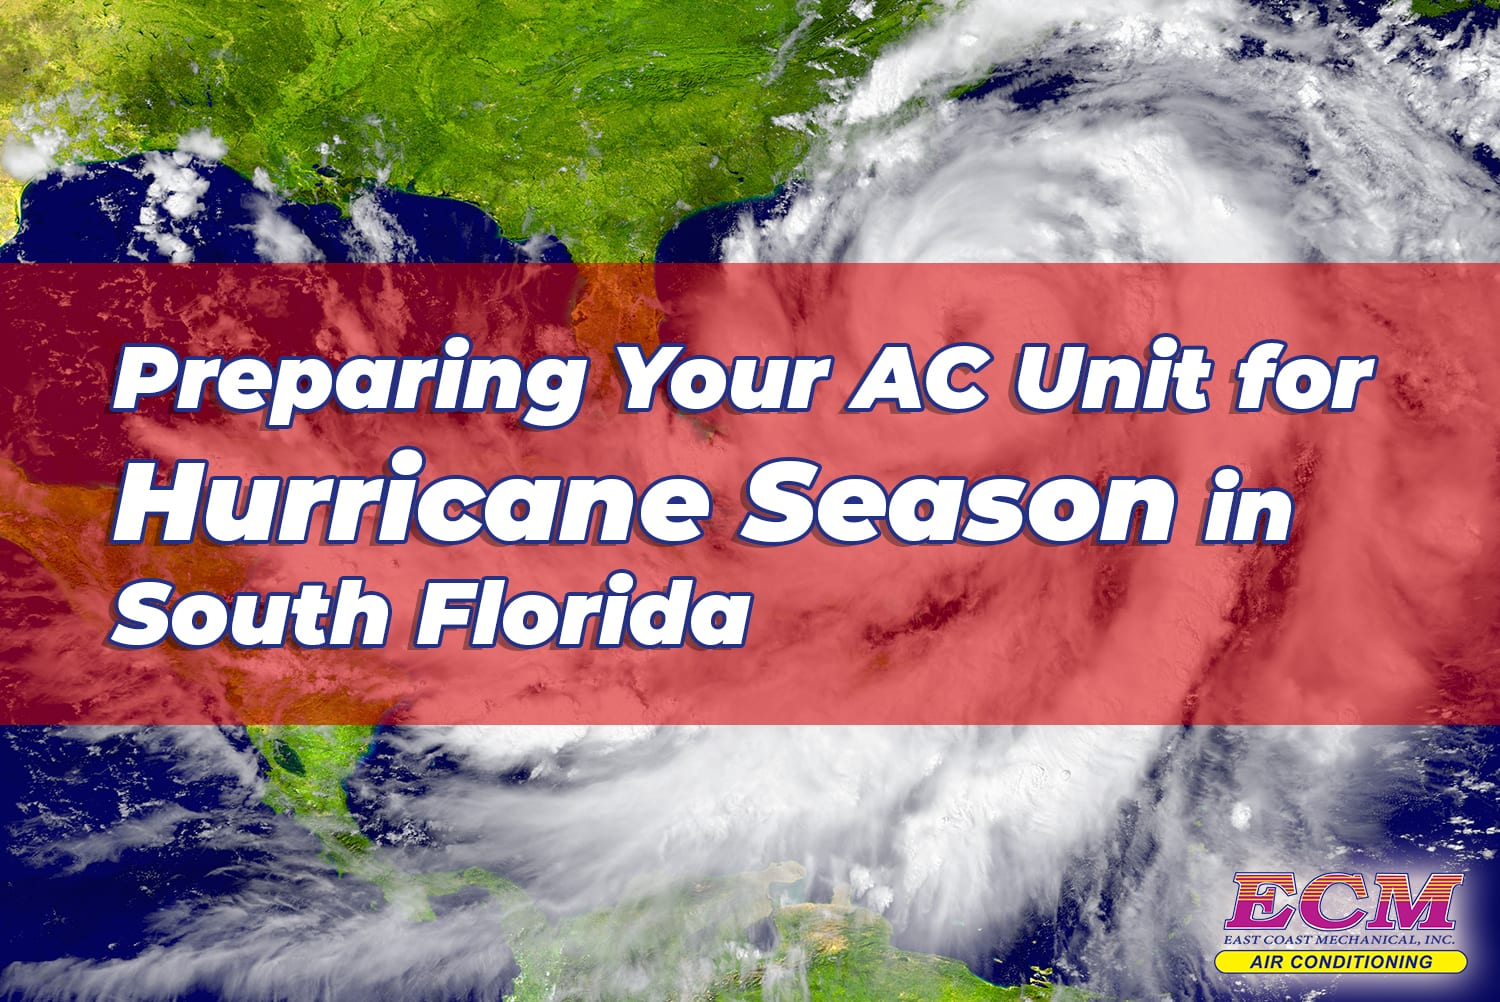 Get Your AC Unit Ready for Hurricane Season